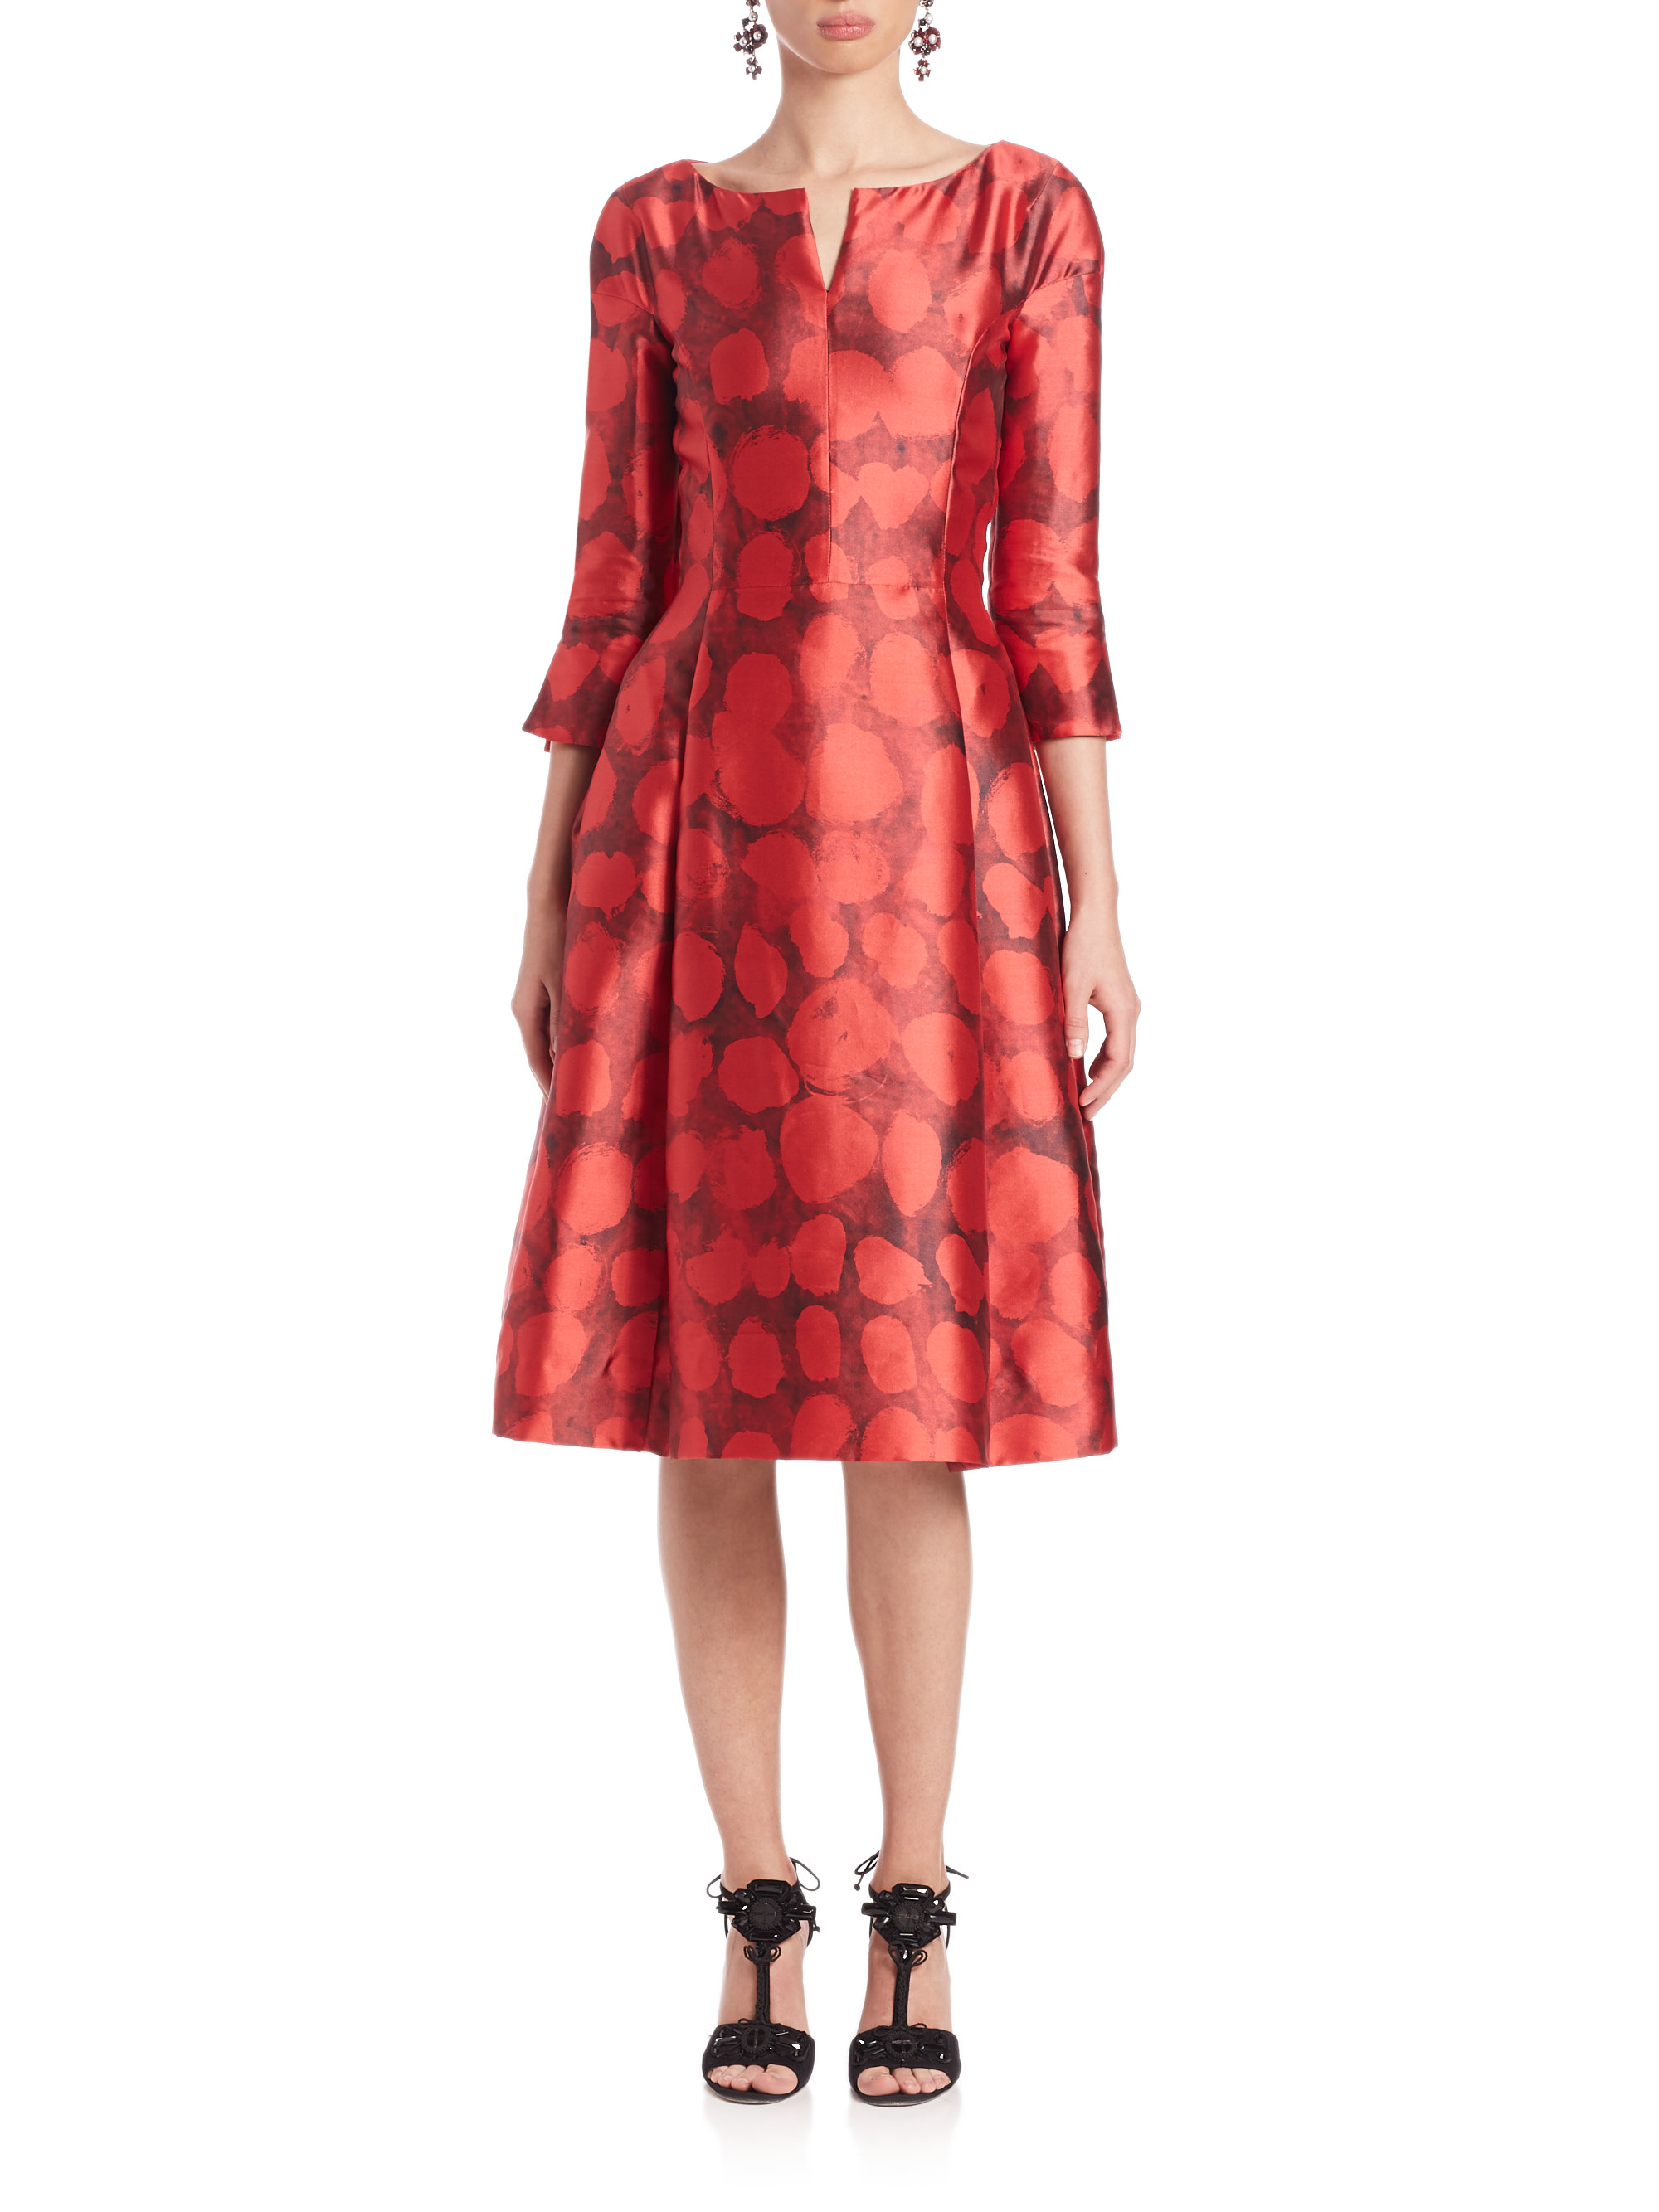 lyst oscar de la renta printed satin a line dress in red. Black Bedroom Furniture Sets. Home Design Ideas